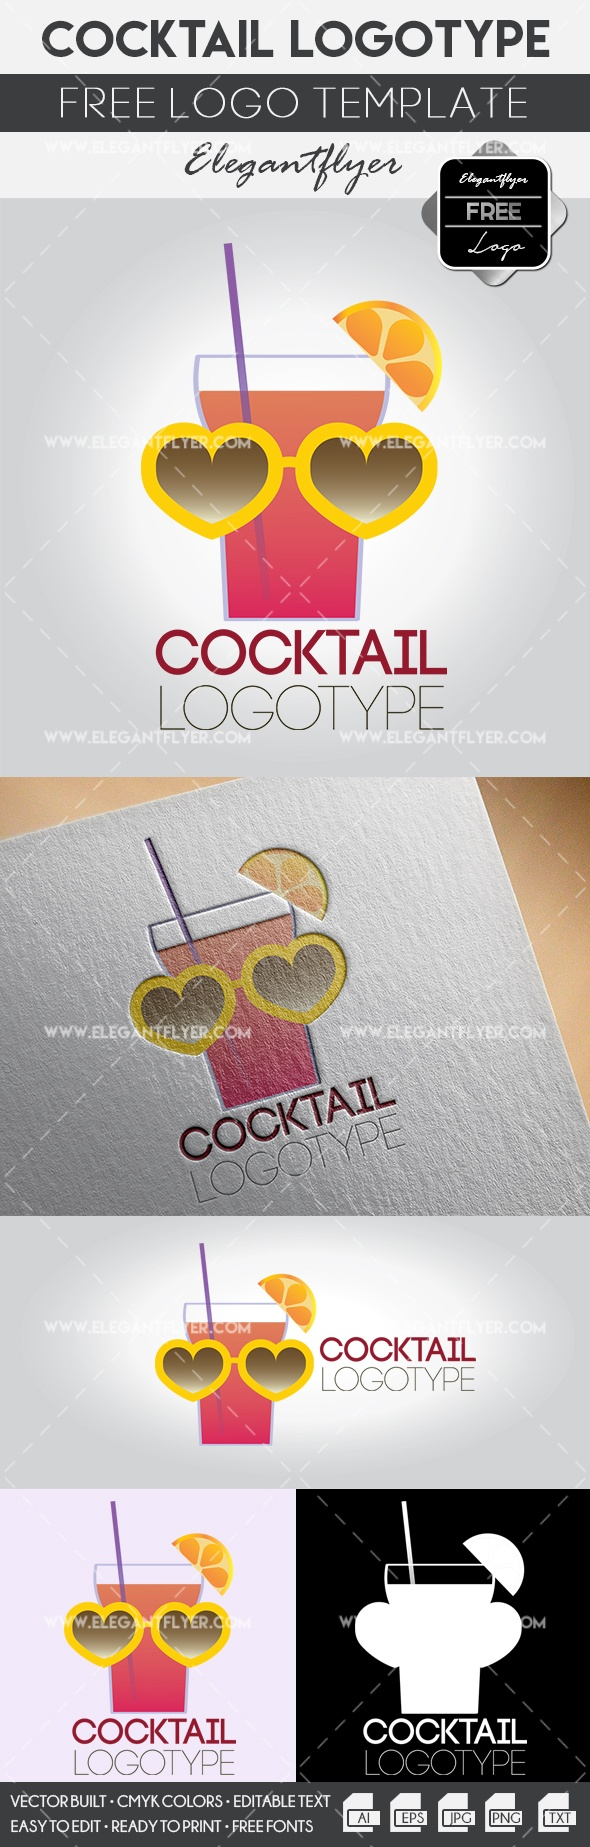 Cocktail – Free Logo Templates